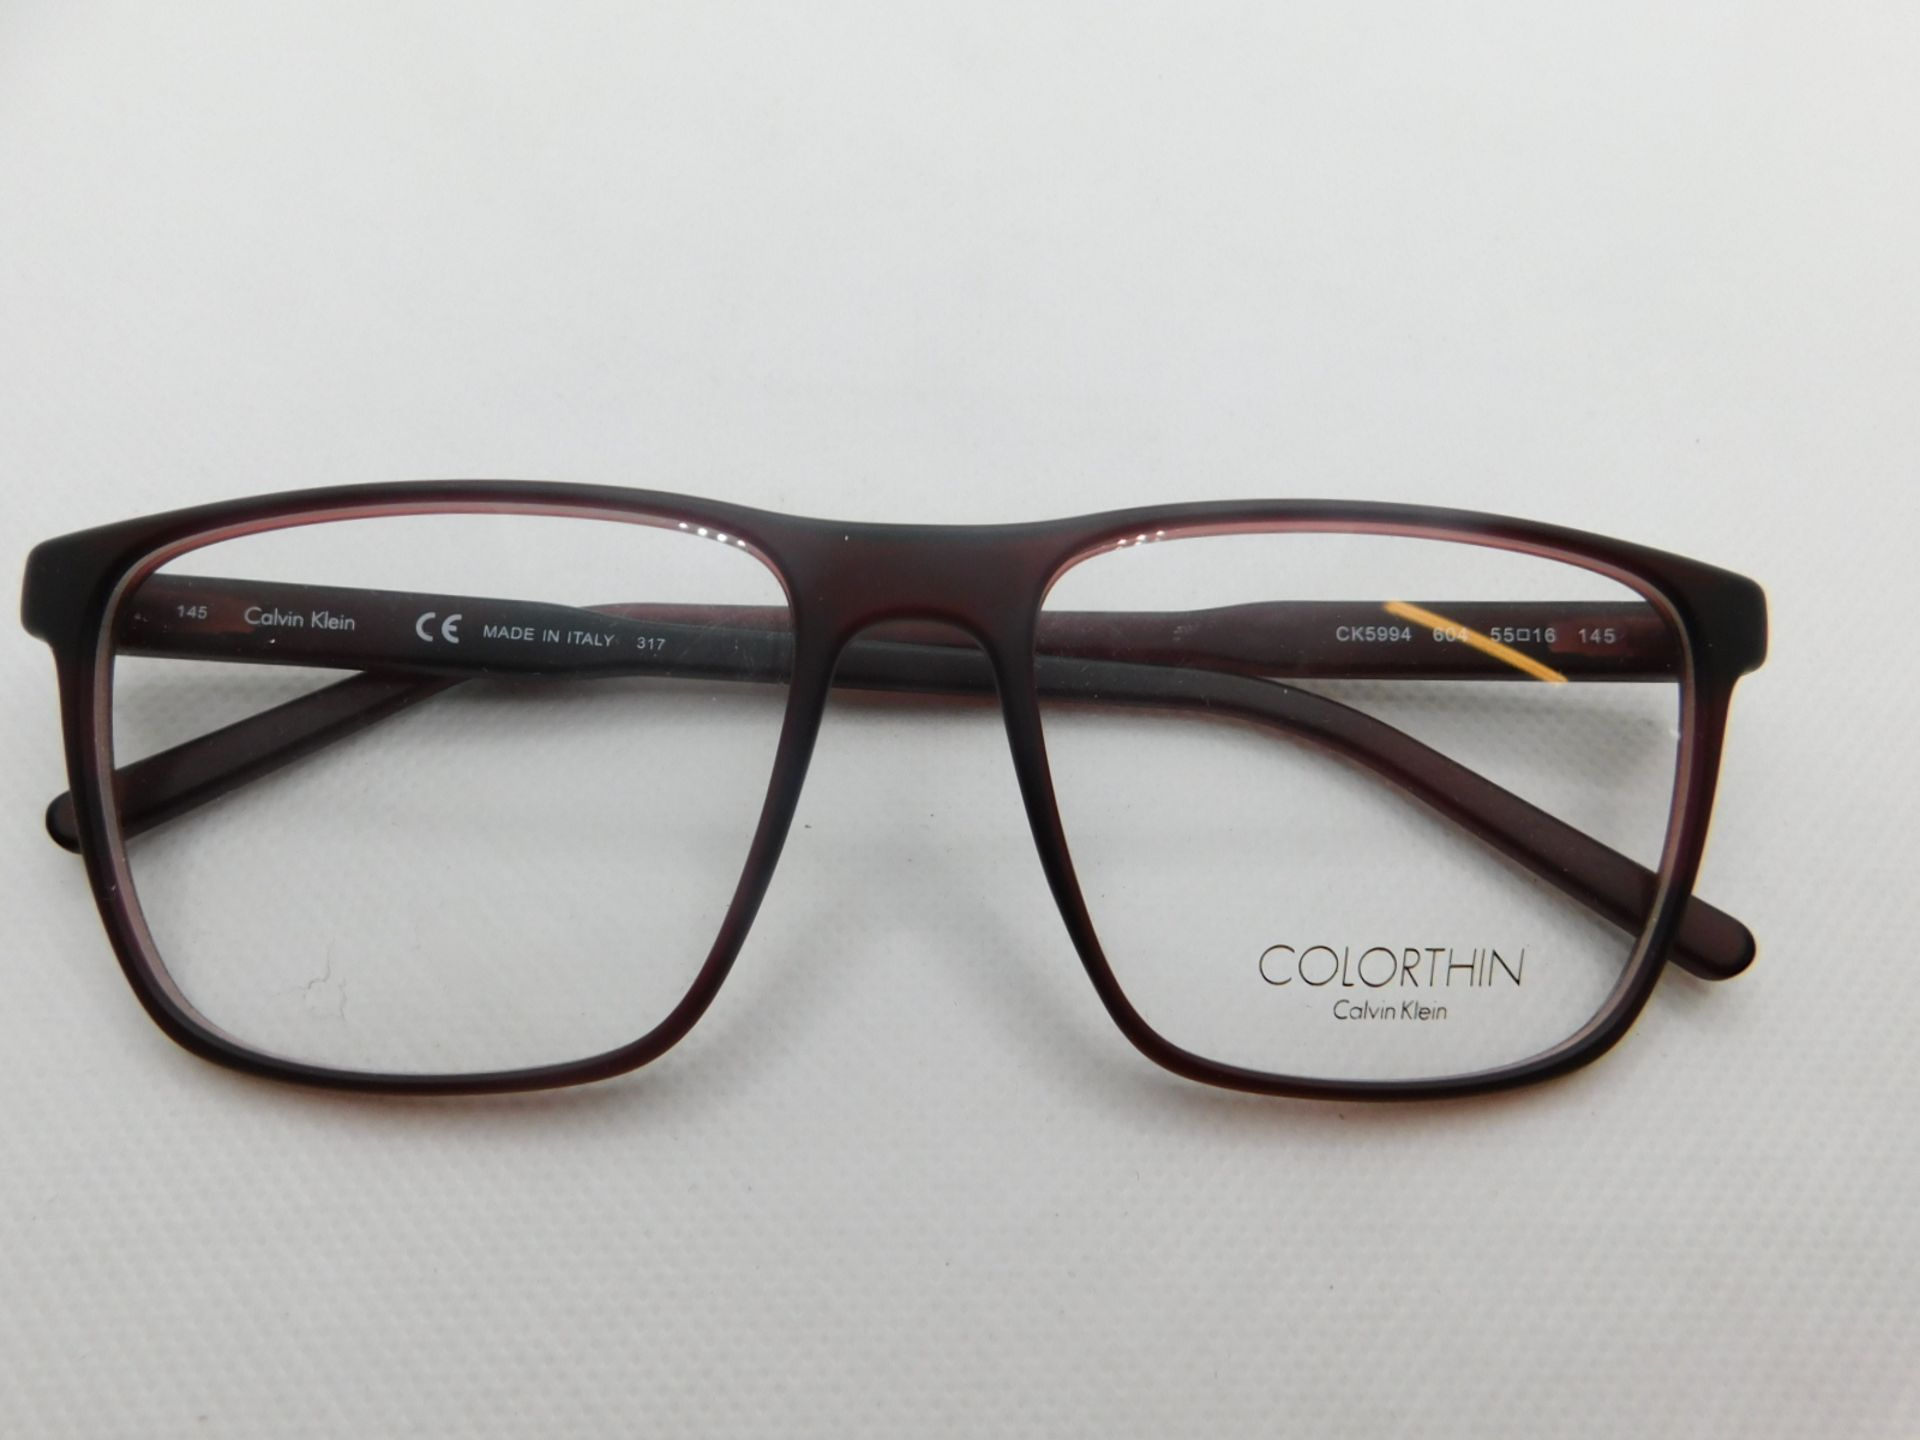 1 PAIR OF CALVIN KLEIN GLASSES FRAME WITH CASE MODEL CK5994 RRP £129.99